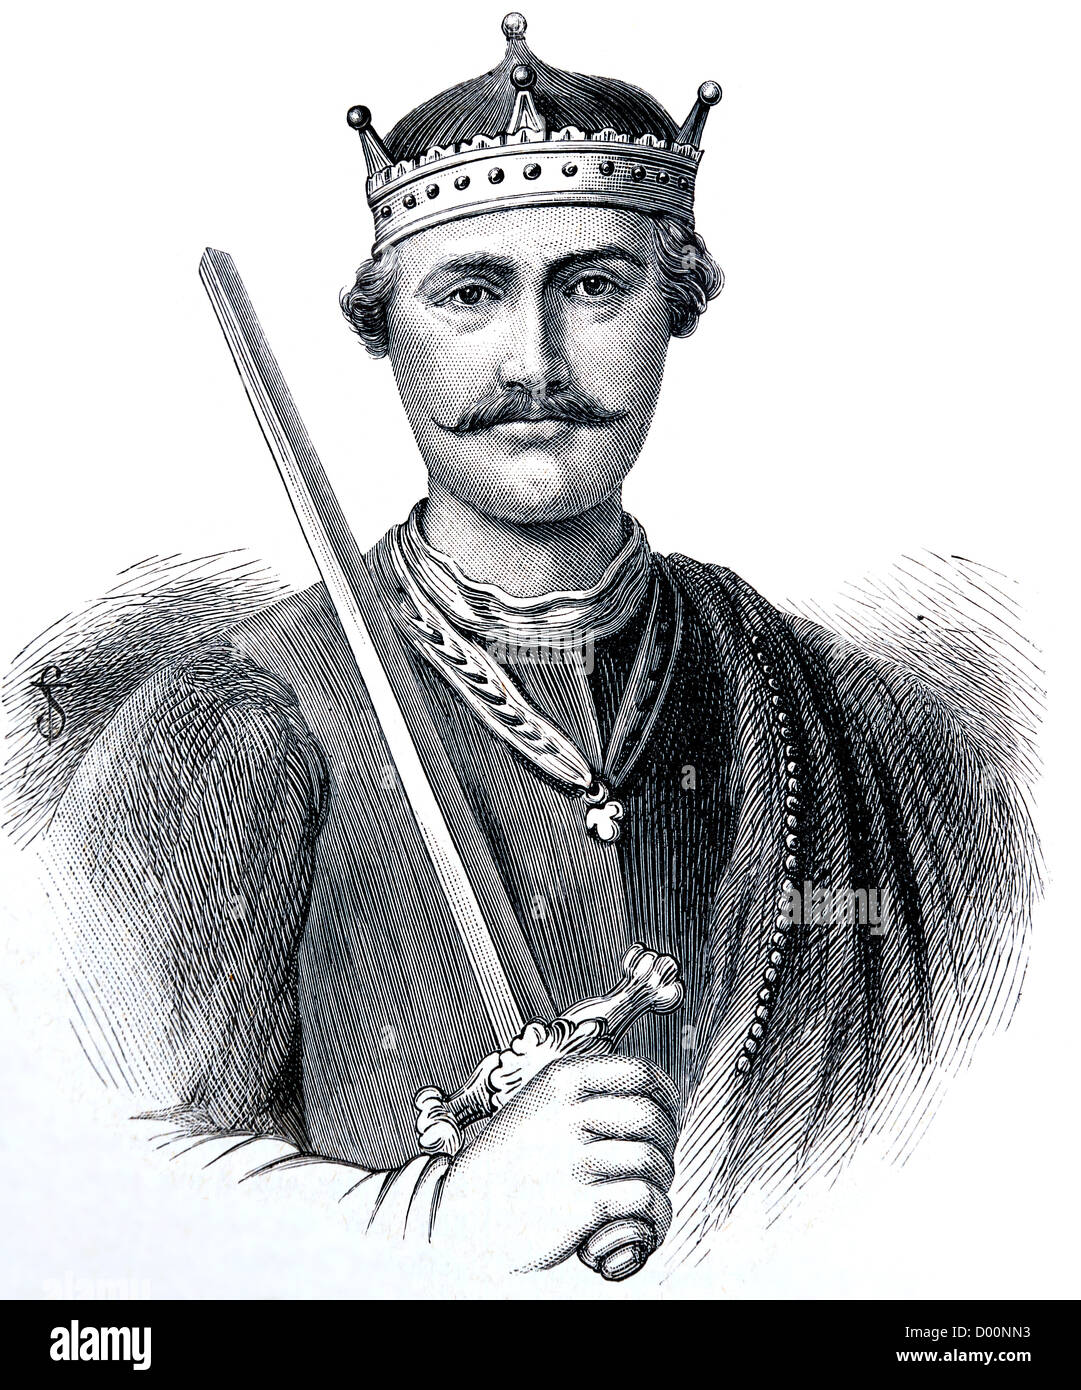 Illustration Of William The Conqueror From The Book Cassell's History Of England Volume 1 - Stock Image